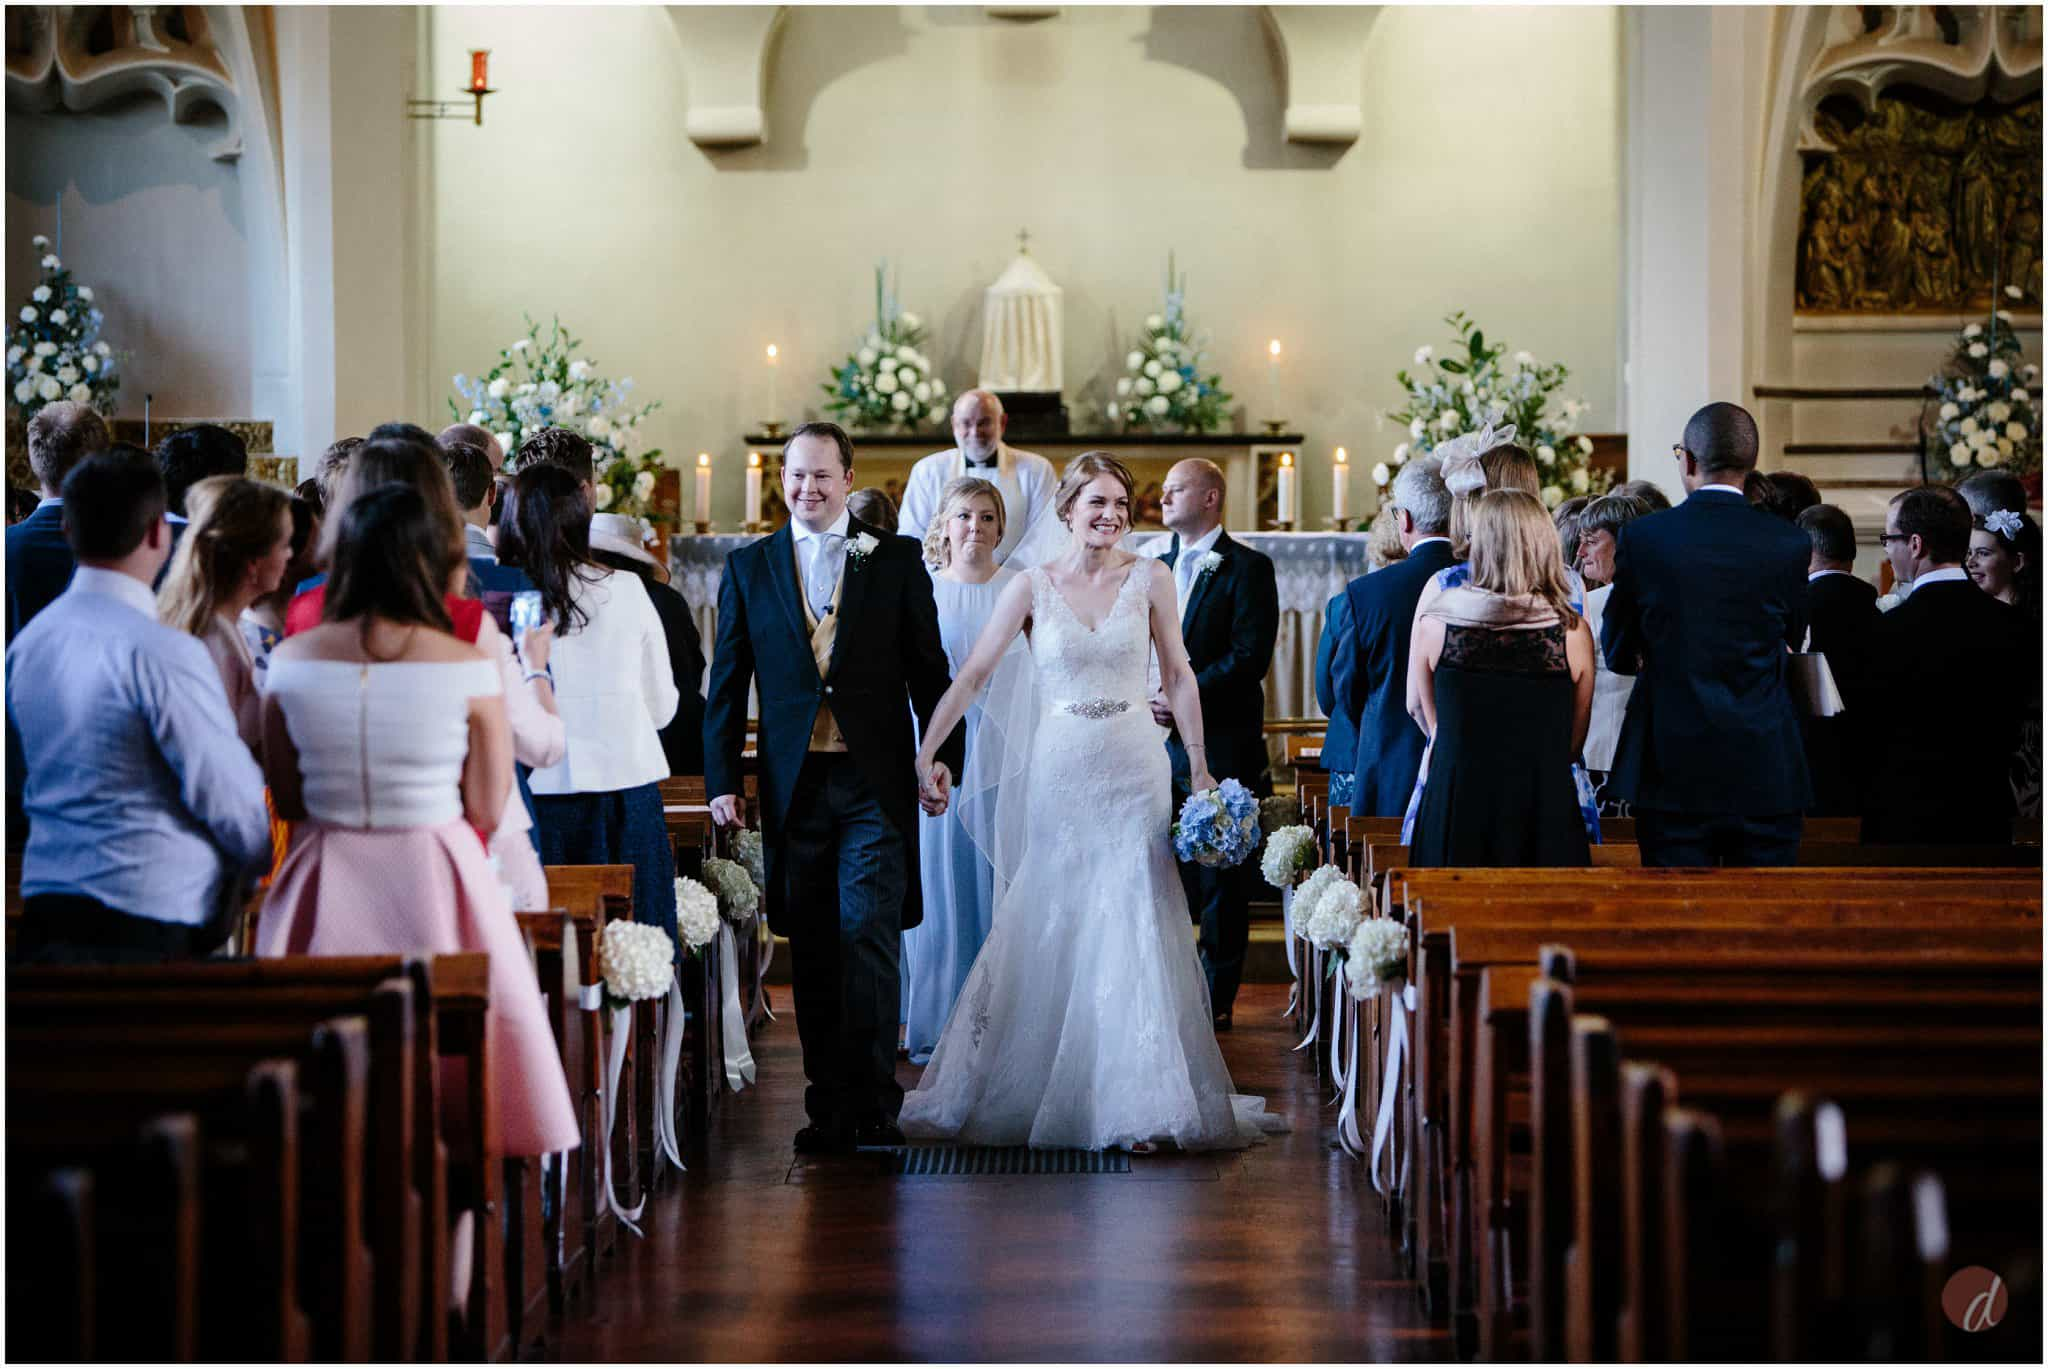 Our Lady Help of Christians wedding photos